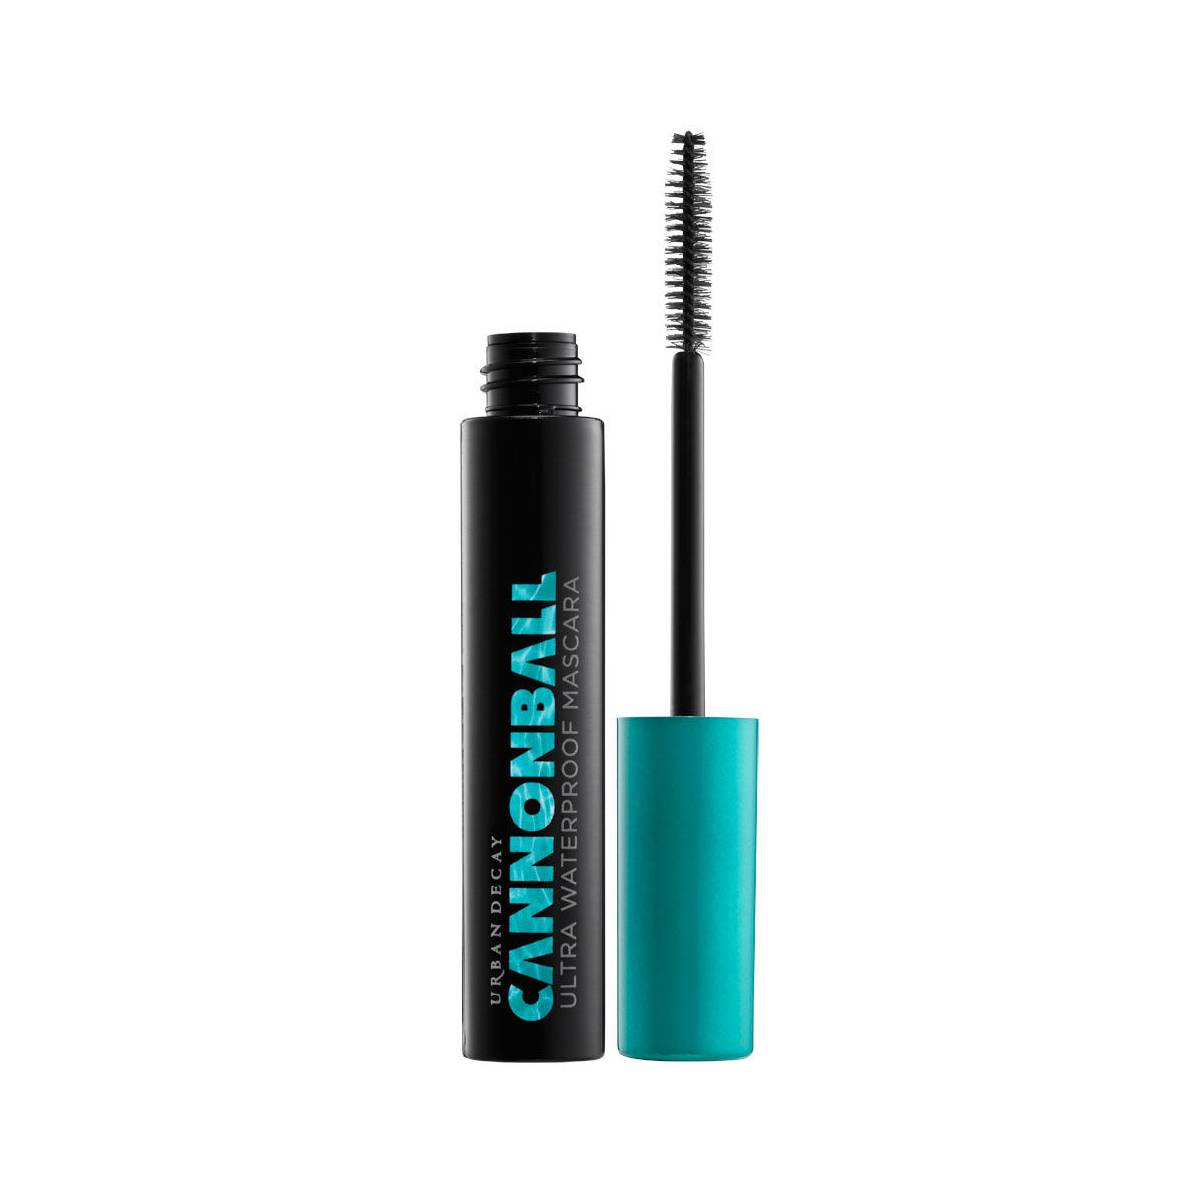 the-best-waterproof-mascara-253695-1522600944488-main.1200x0c.jpg